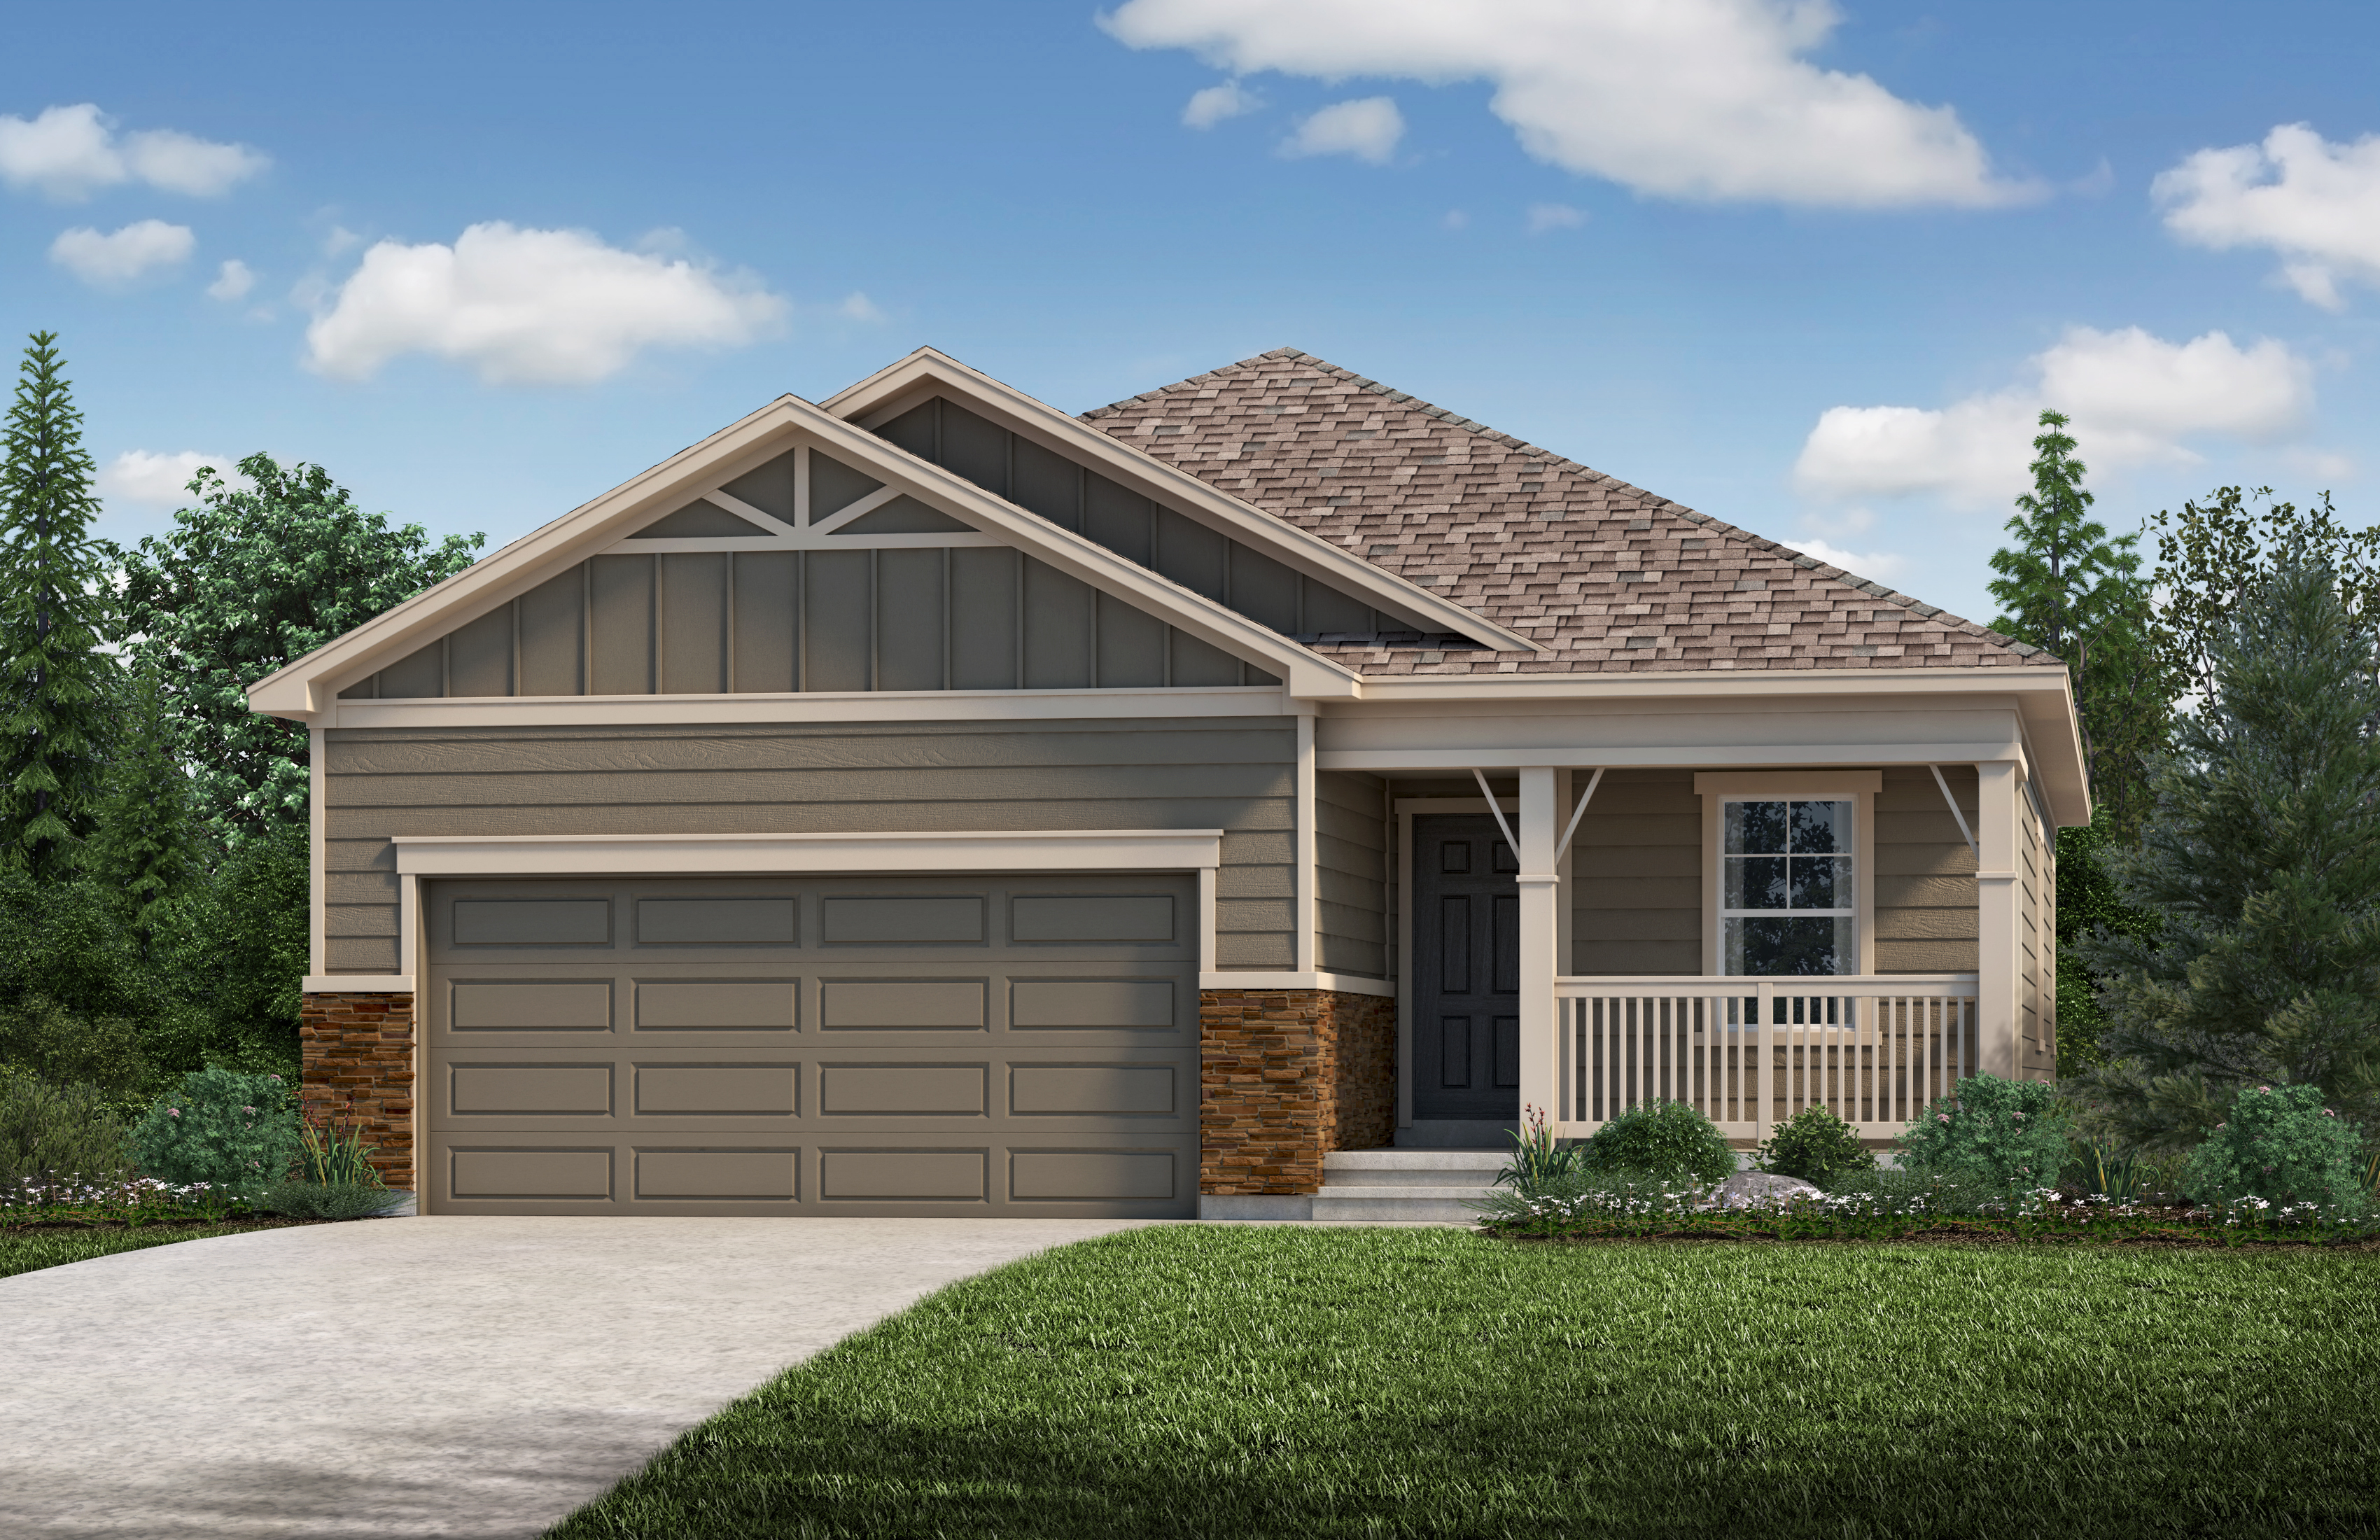 KB Home Expands Into Northern Colorado Market With Two New Communities |  Business Wire